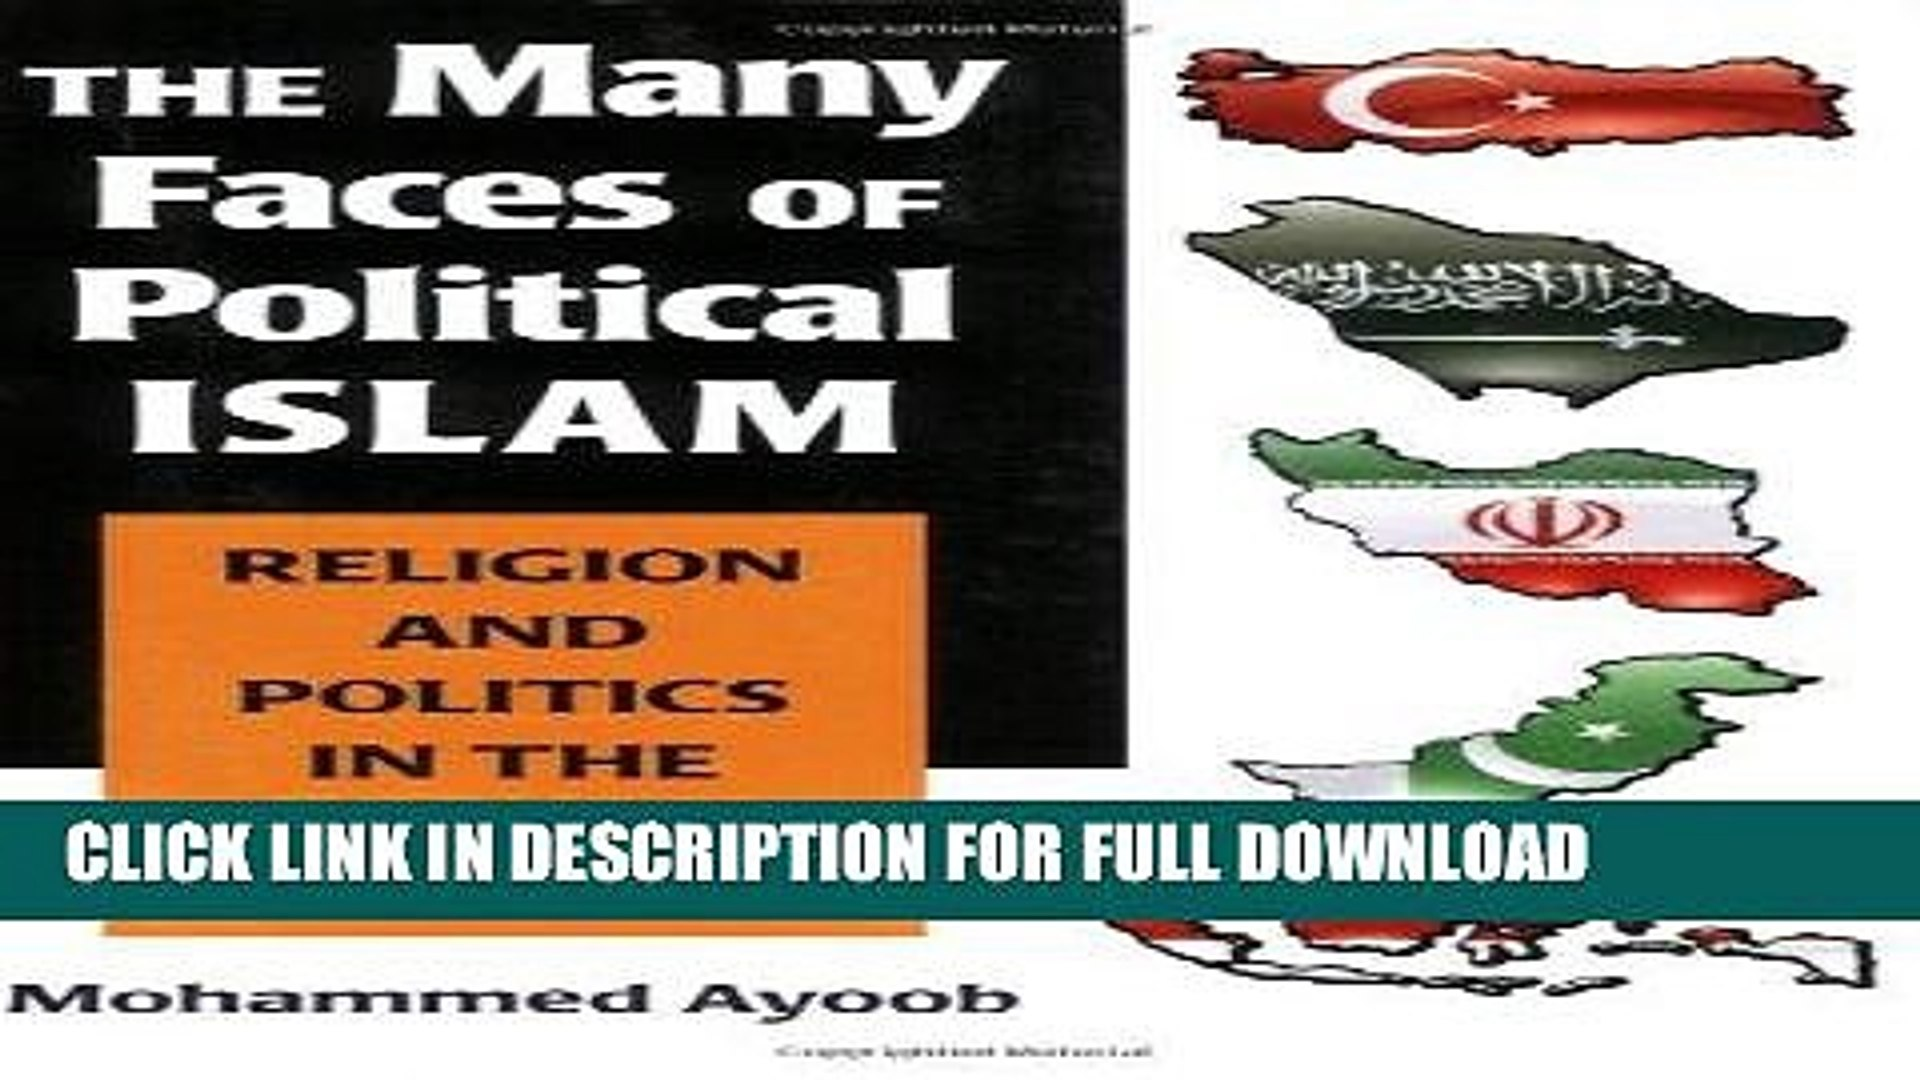 [Read] PDF The Many Faces of Political Islam: Religion and Politics in the Muslim World New Version